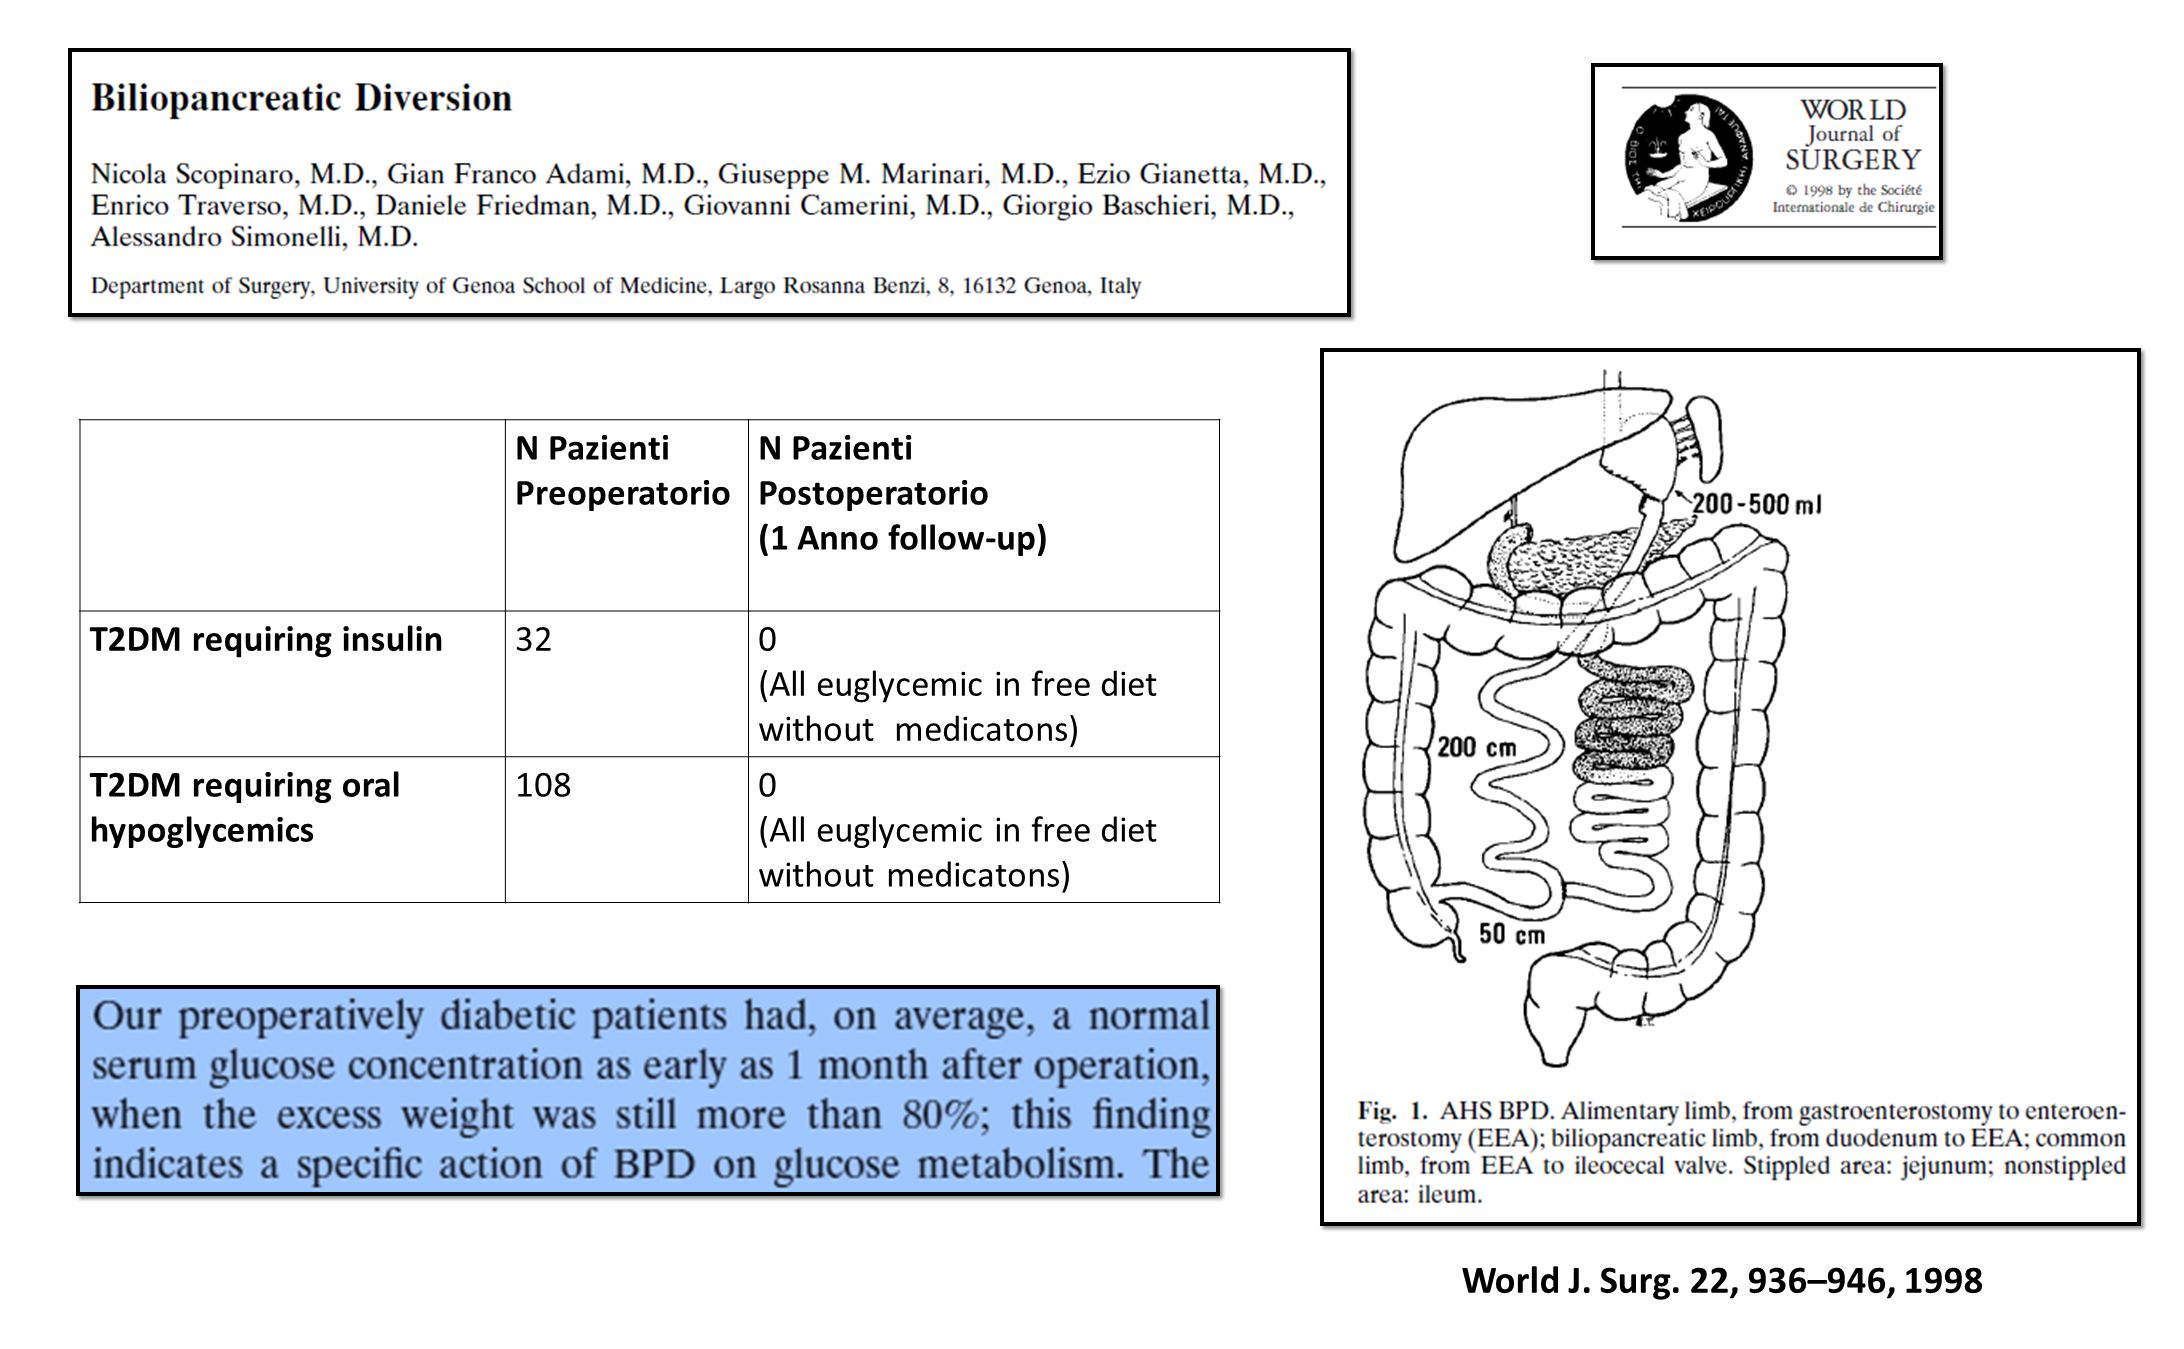 World J. Surg. 22, 936–946, 1998 N Pazienti Preoperatorio